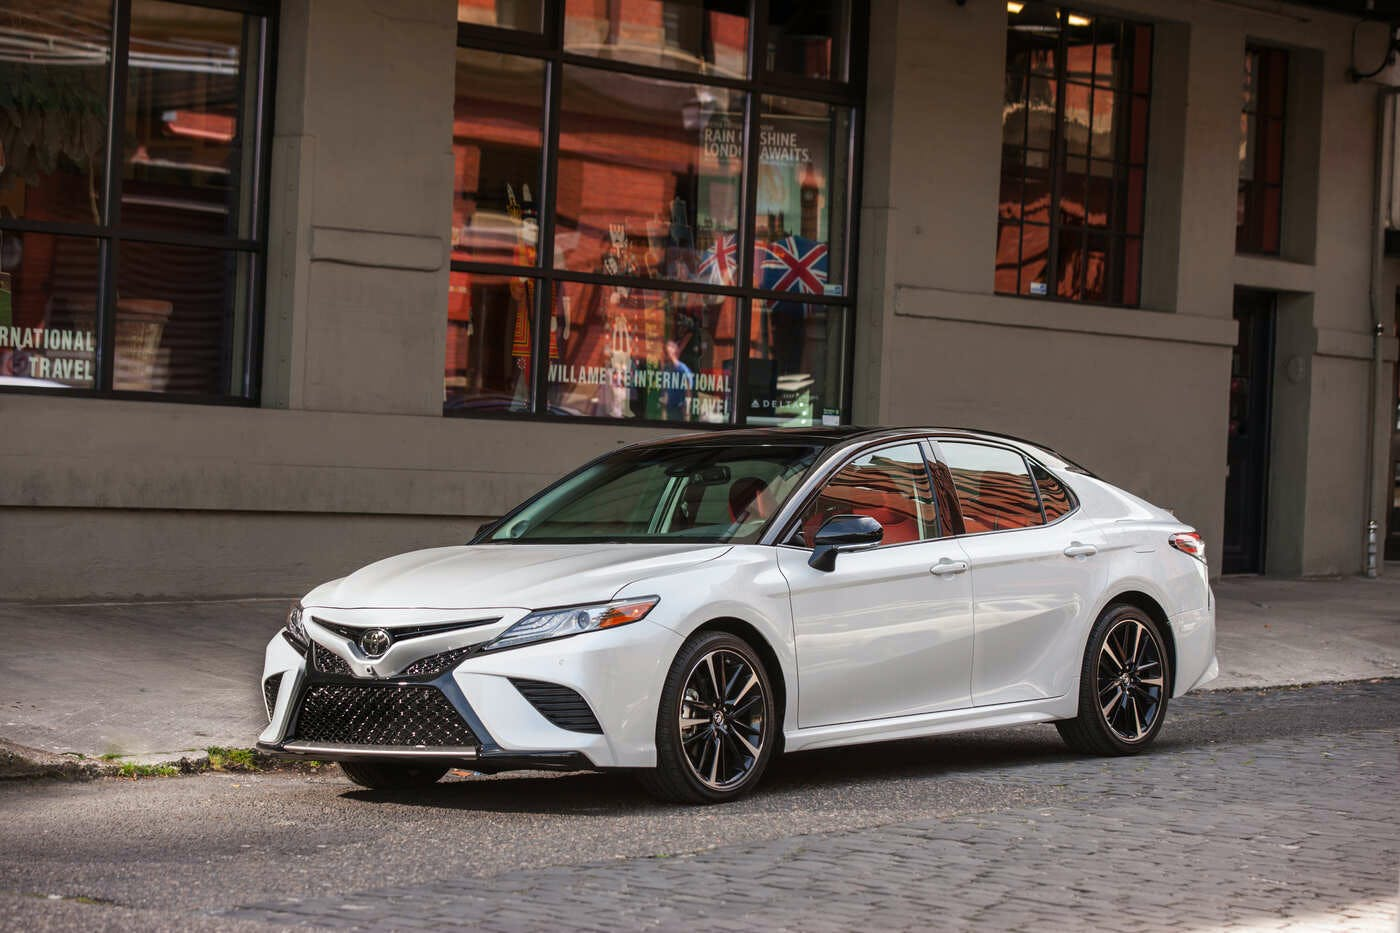 2021 Toyota Camry Preview Expected Release Date Prices Mpg And Changes